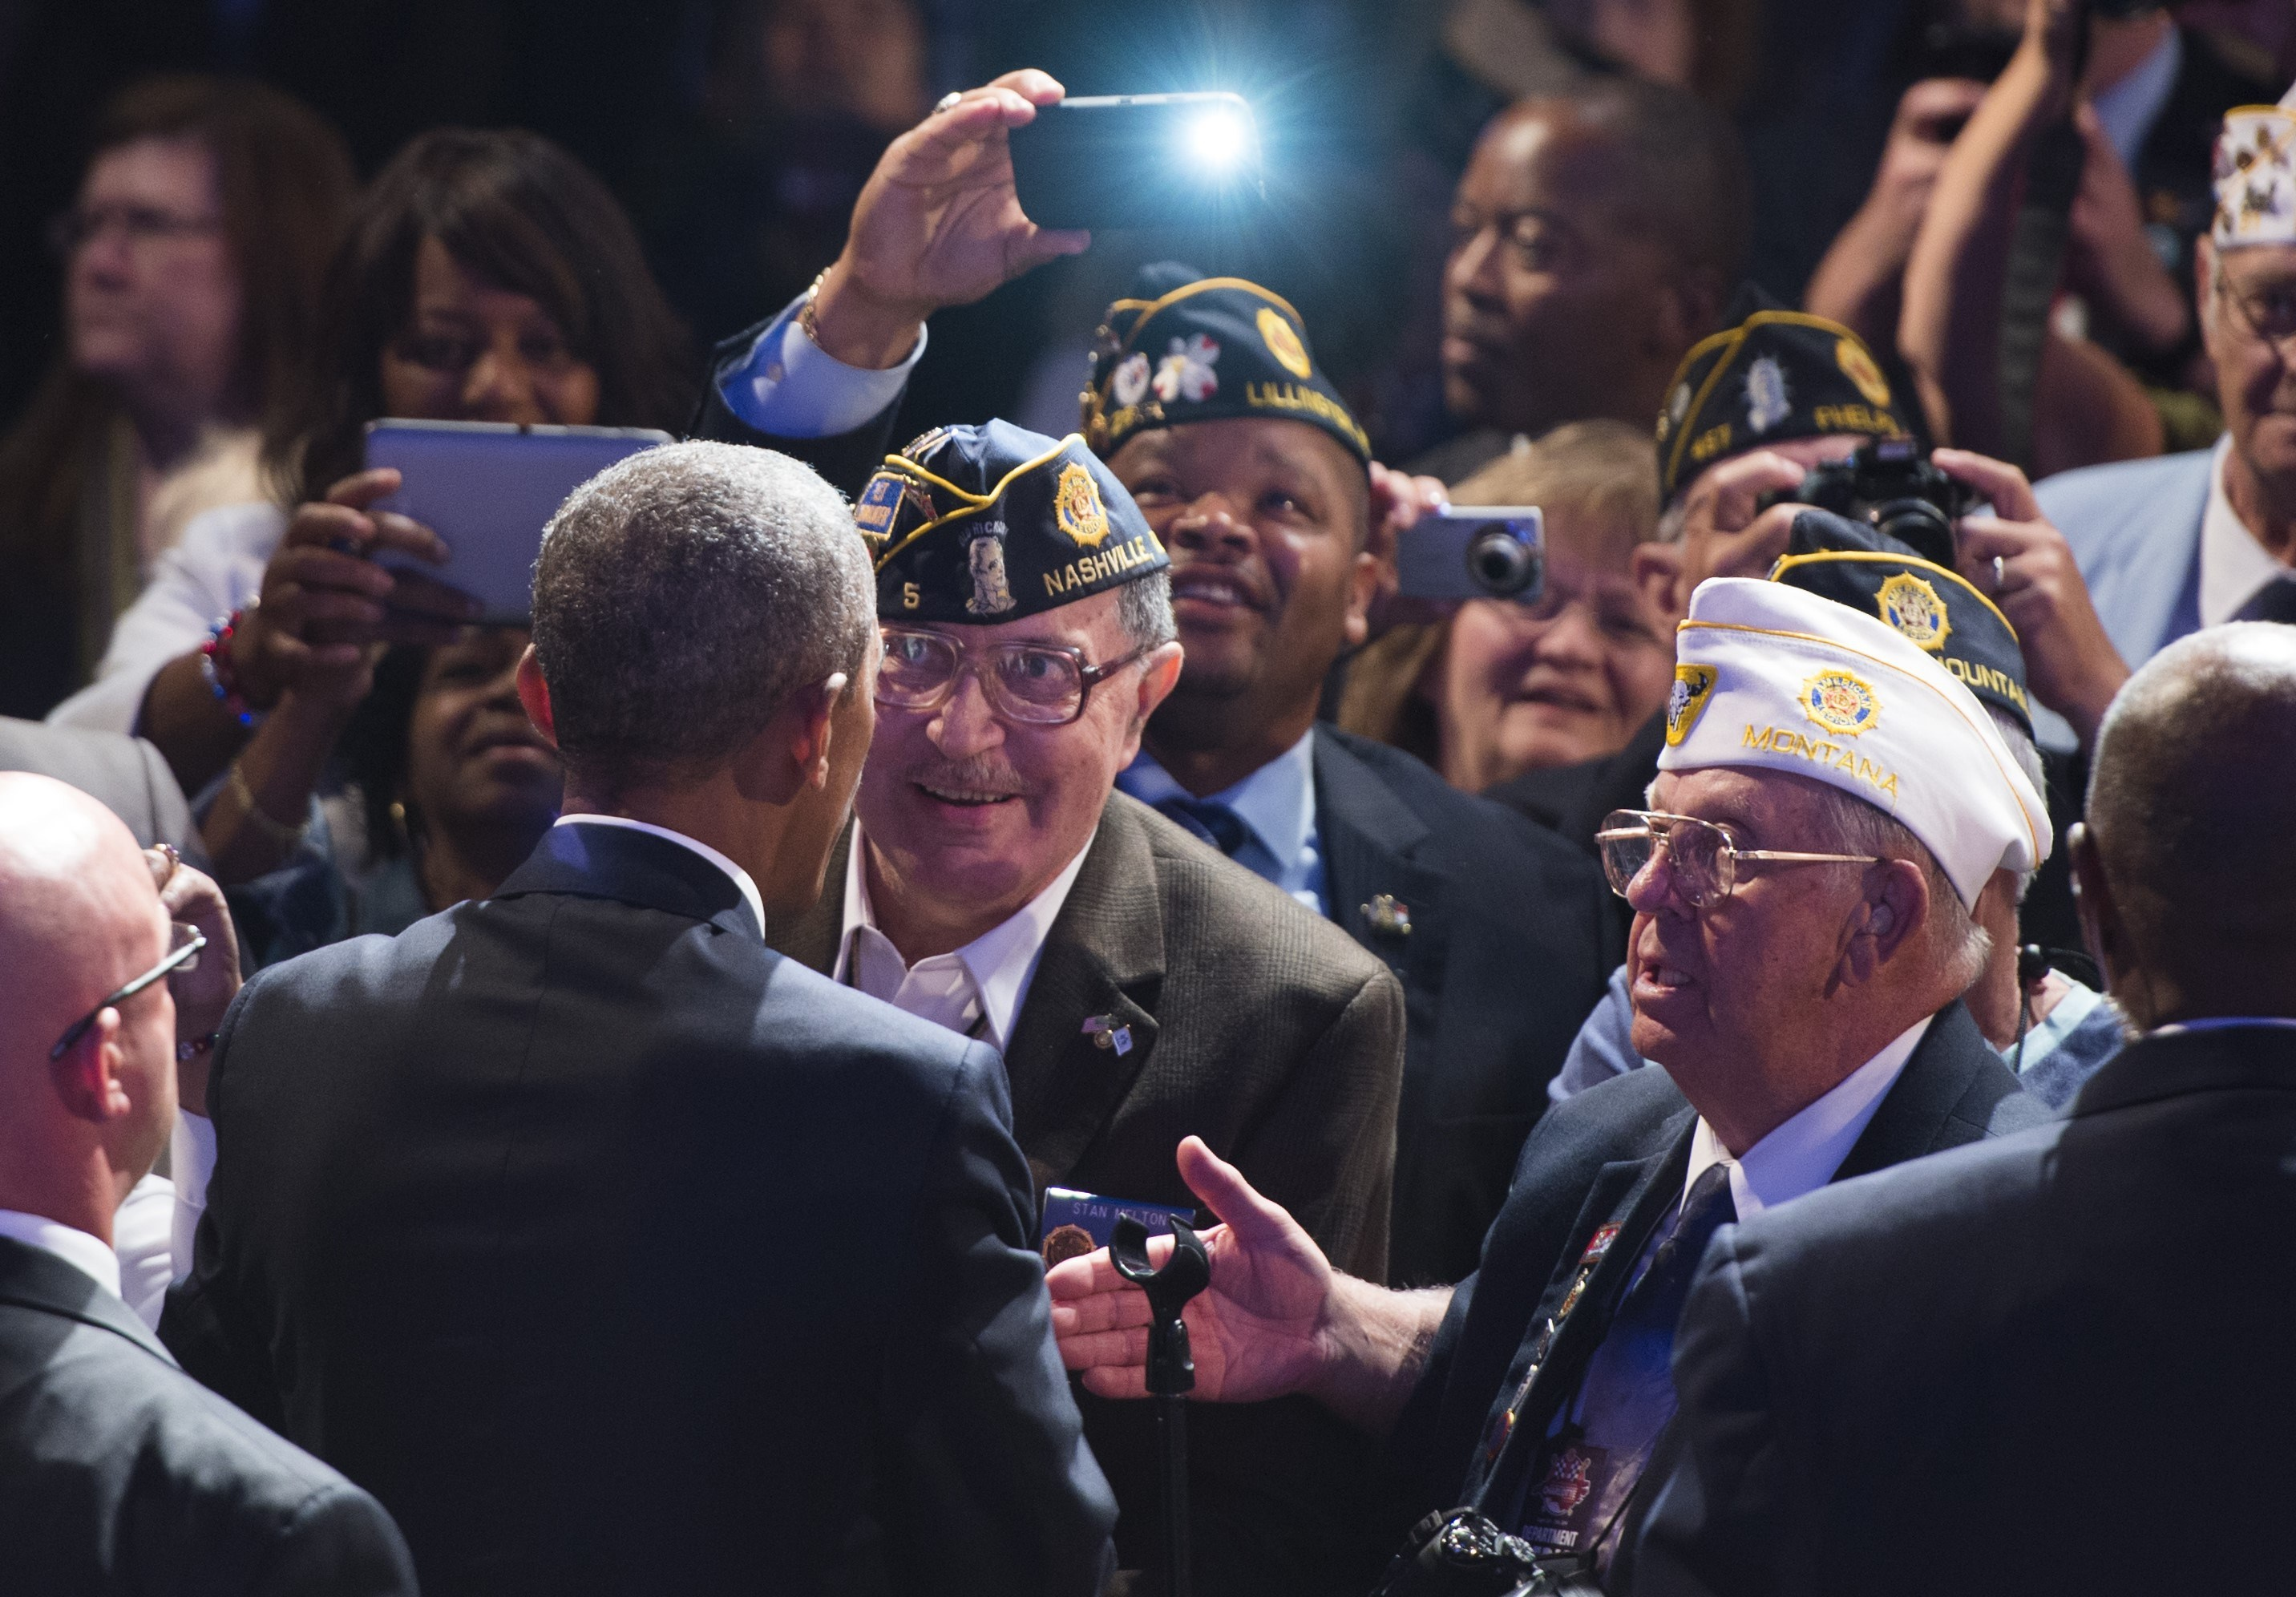 President Barack Obama greets members of the American Legion after speaking at the American Legion's 96th National Convention in Charlotte, North Carolina, August 26, 2014.